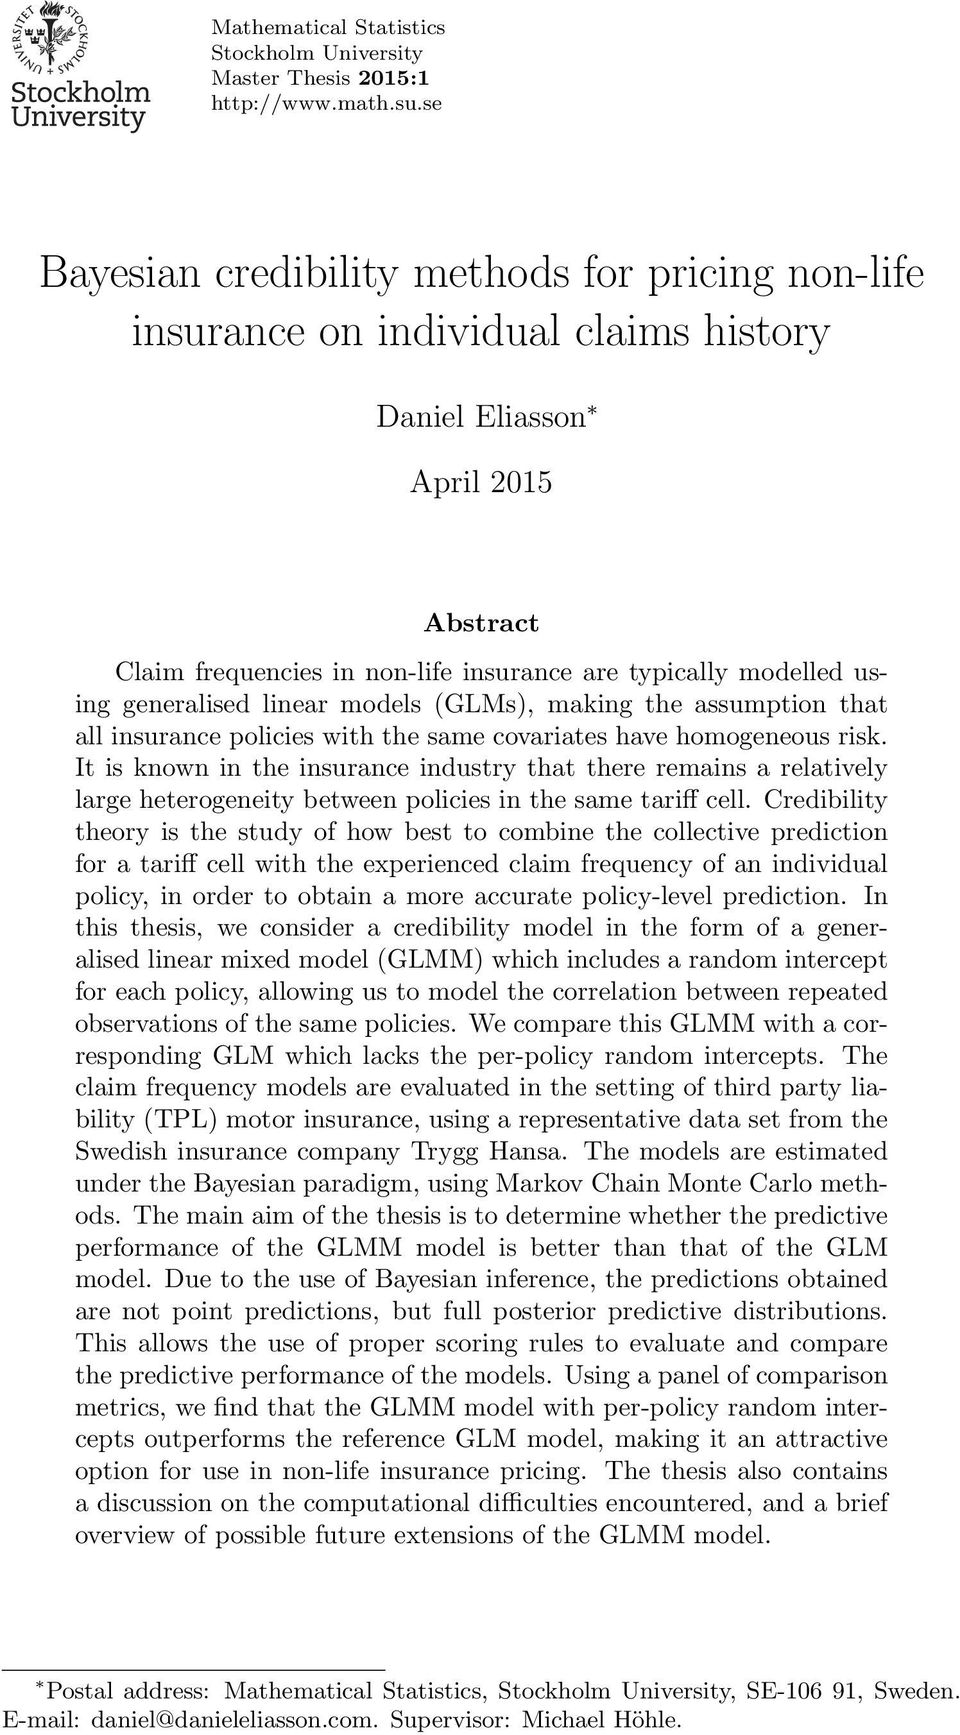 generalised linear models (GLMs), making the assumption that all insurance policies with the same covariates have homogeneous risk.